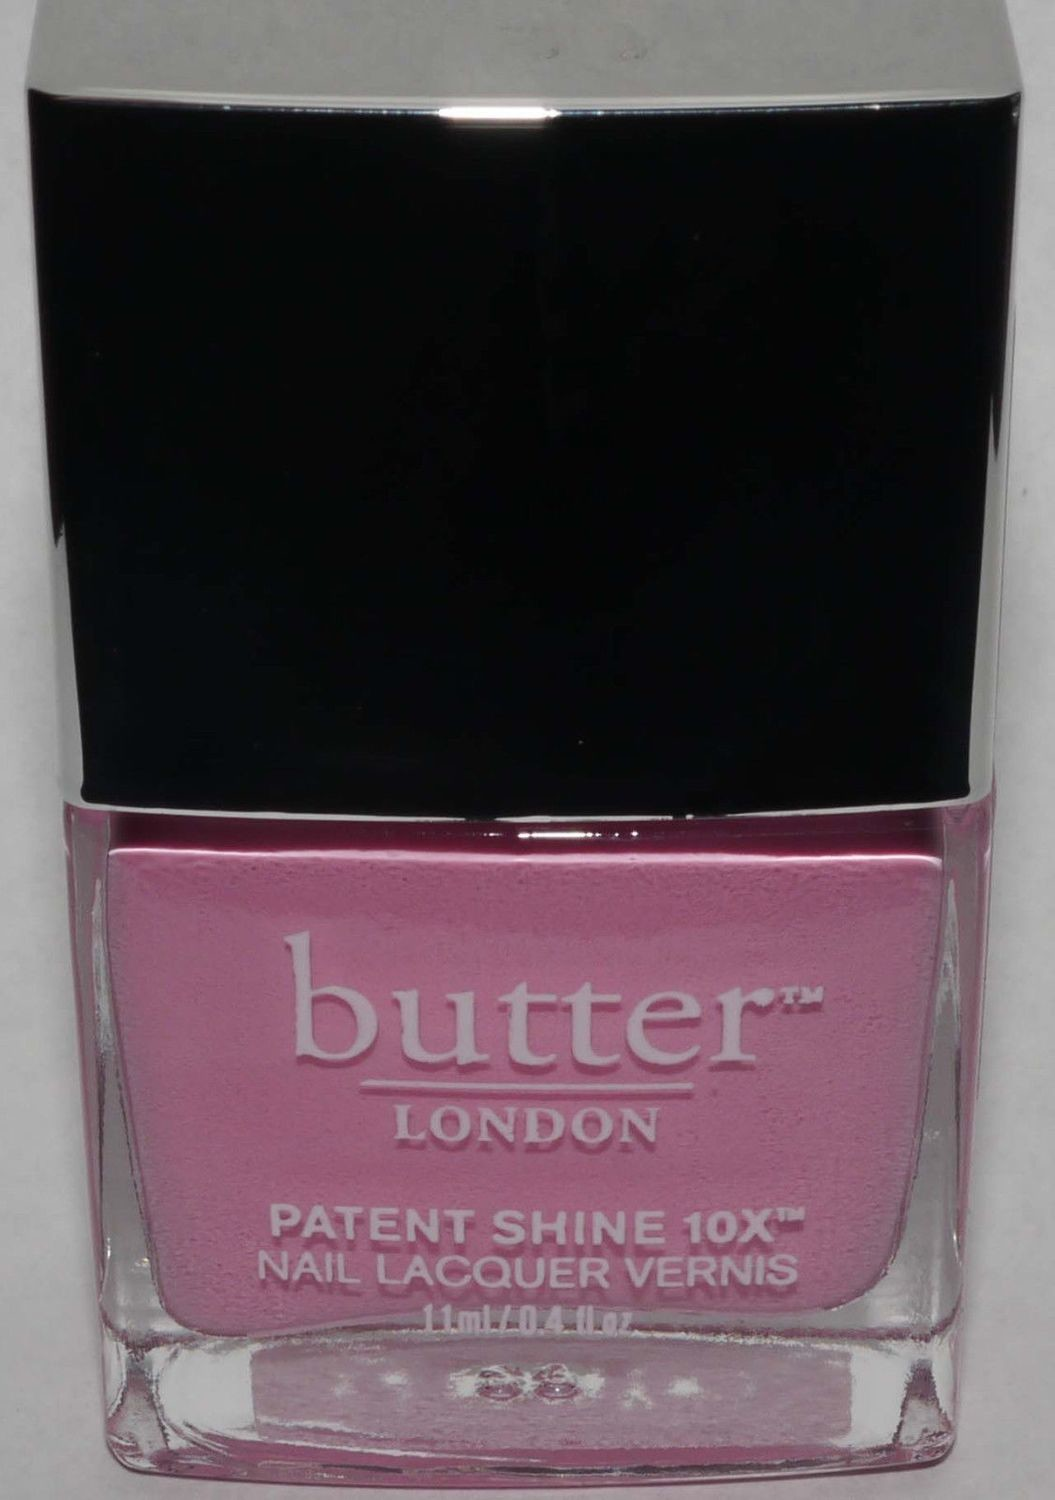 Loverly - Butter LONDON Patent Shine 10X Nail Polish Lacquer .4 oz